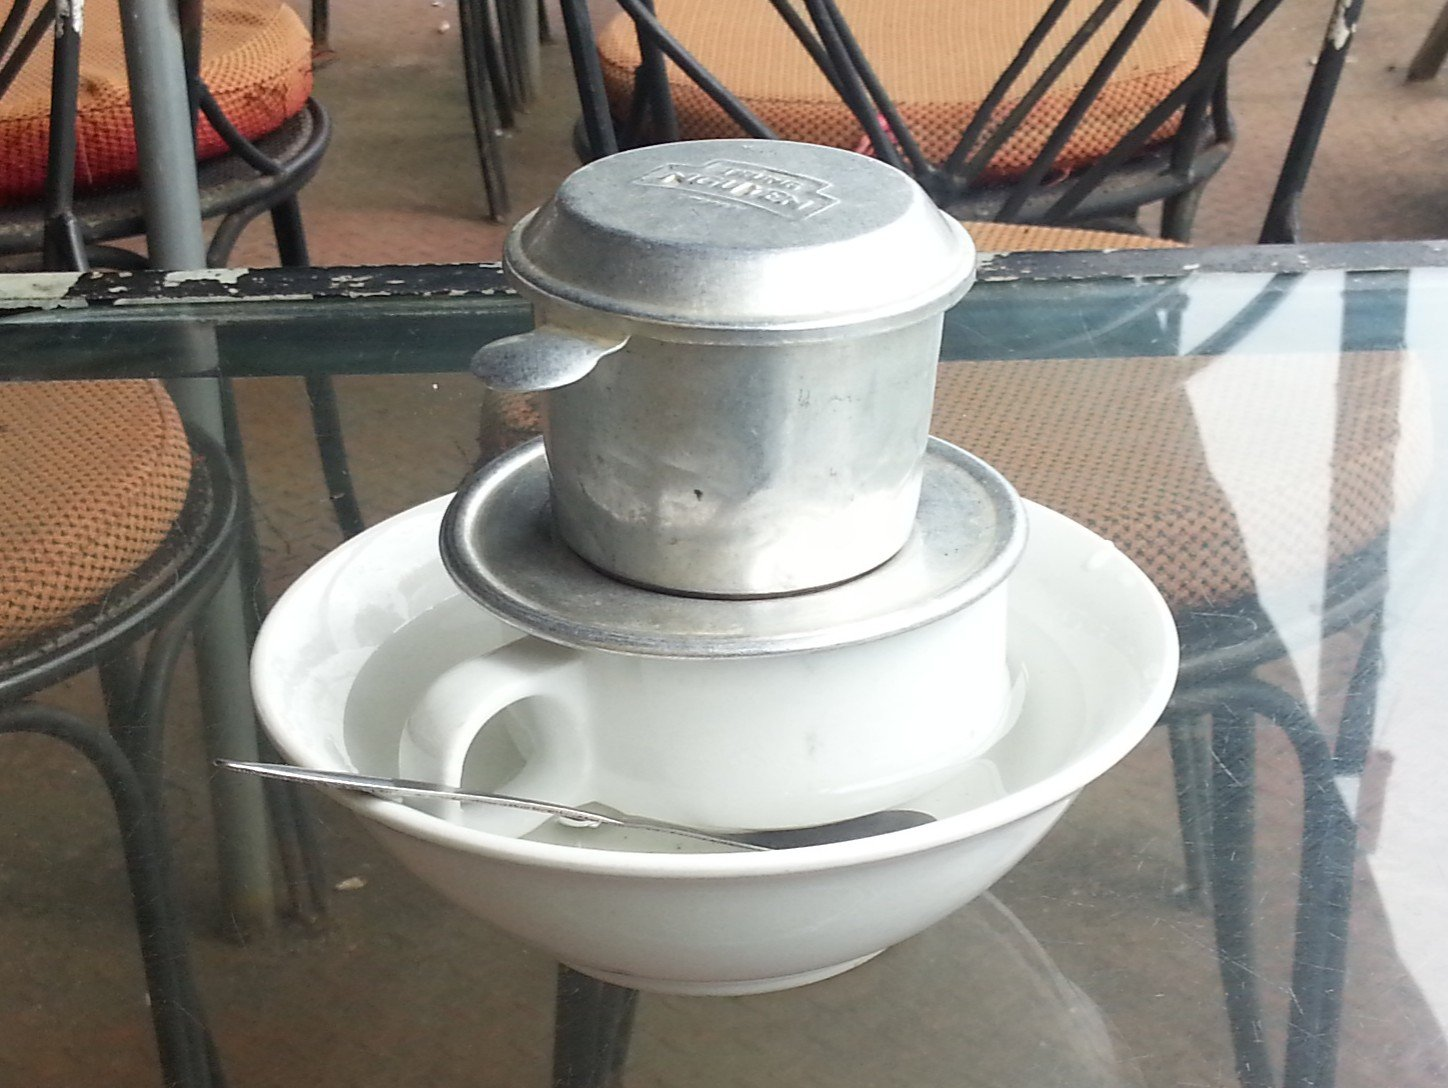 Vietnamese Coffee brewed in a phin